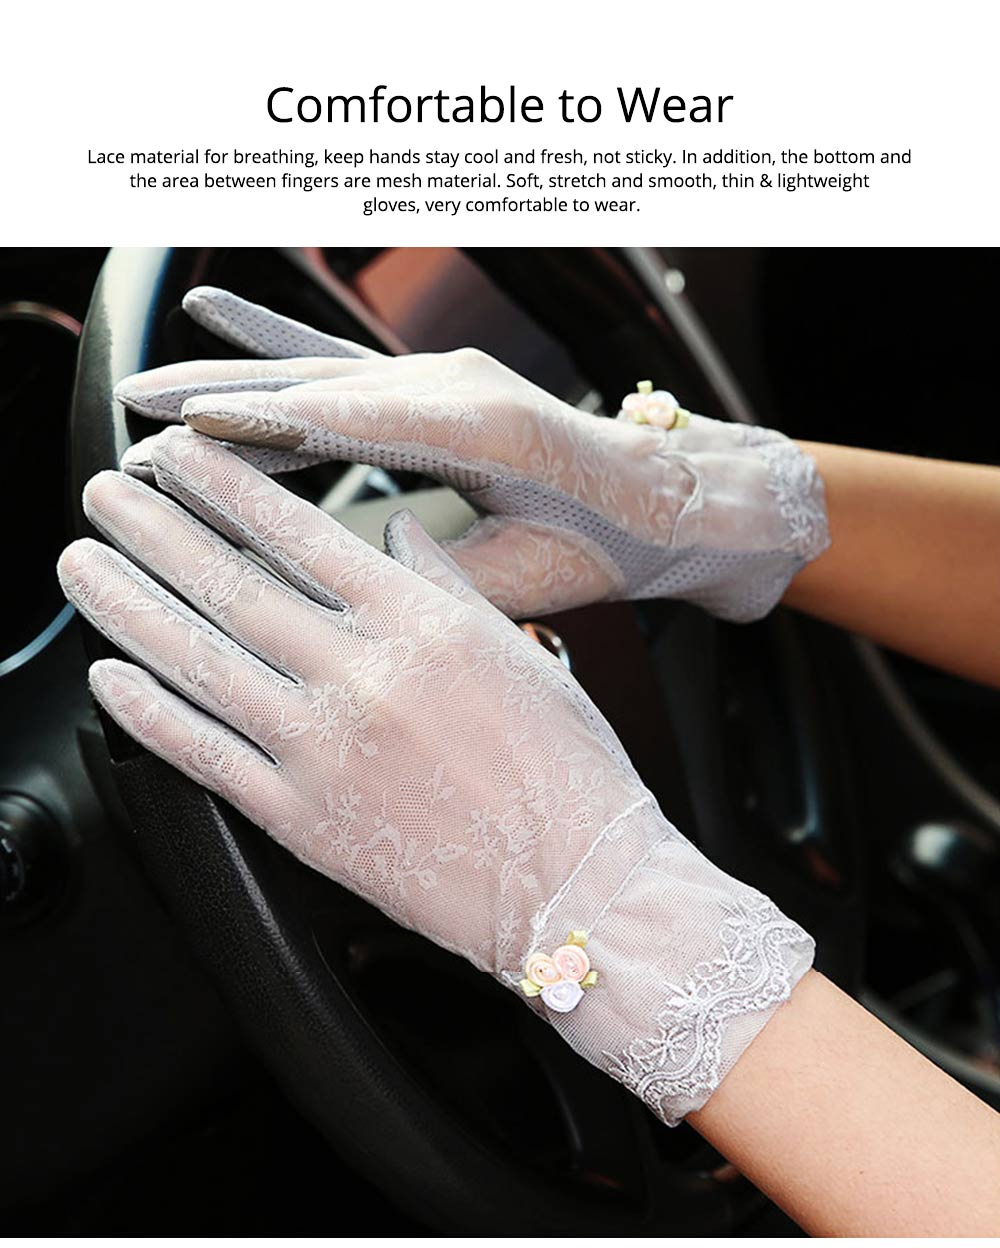 Summer Women Gloves Women's UV Protection Sun Driving Gloves Lace Touch Screen Thin Gloves for Gifts 2